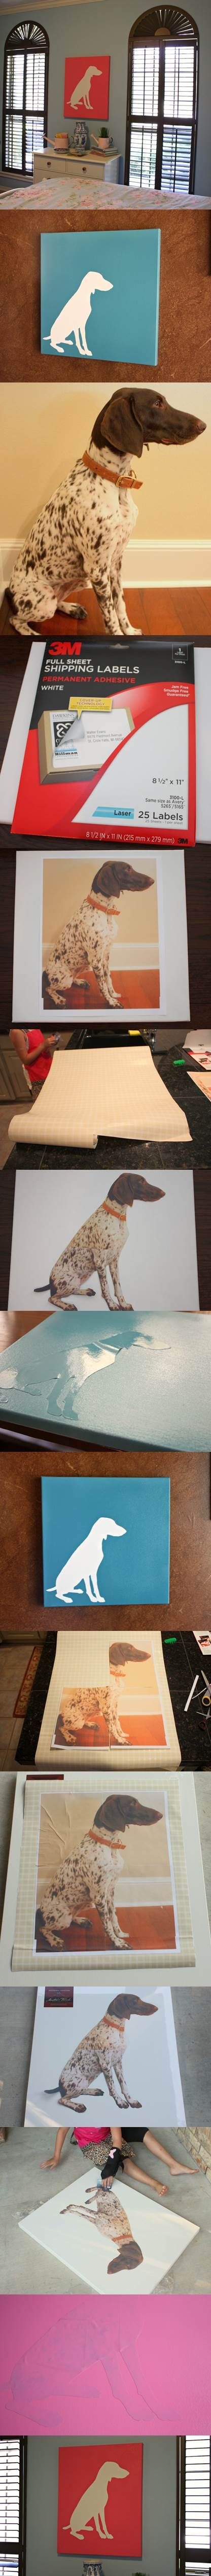 DIY Dog Silhouette Art 2